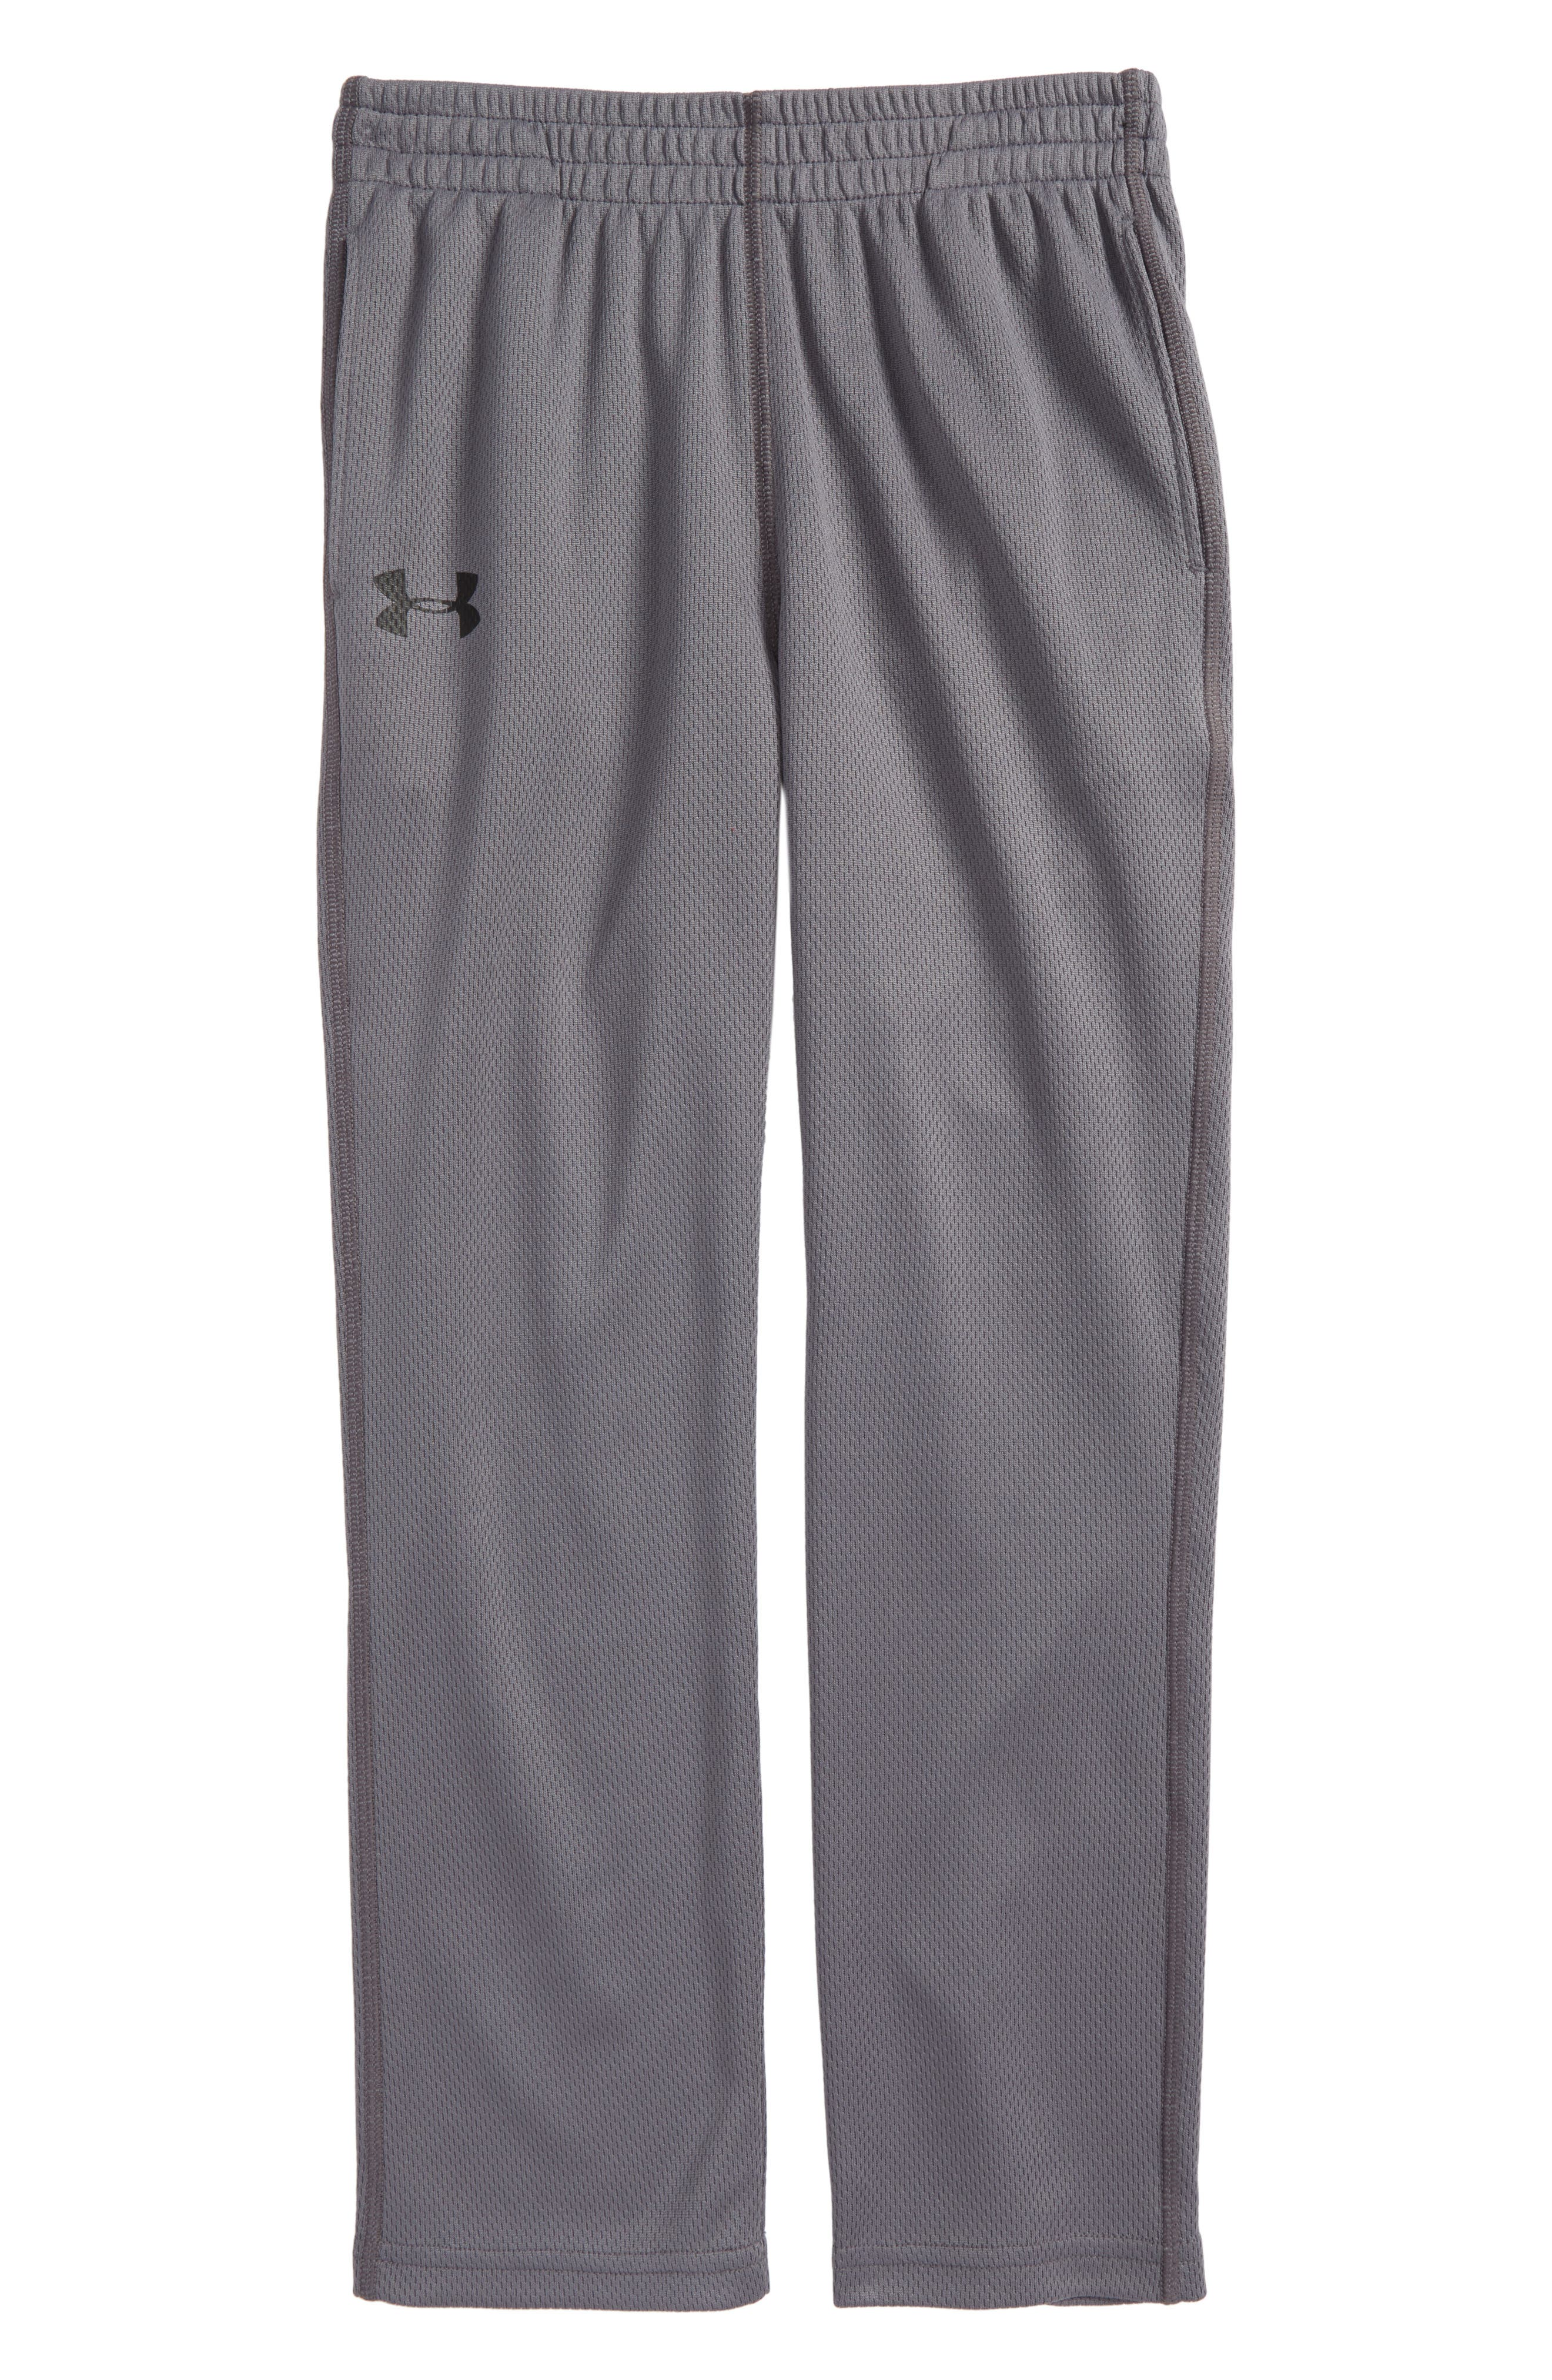 Main Image - Under Armour Mesh Pants (Toddler Boys & Little Boys)